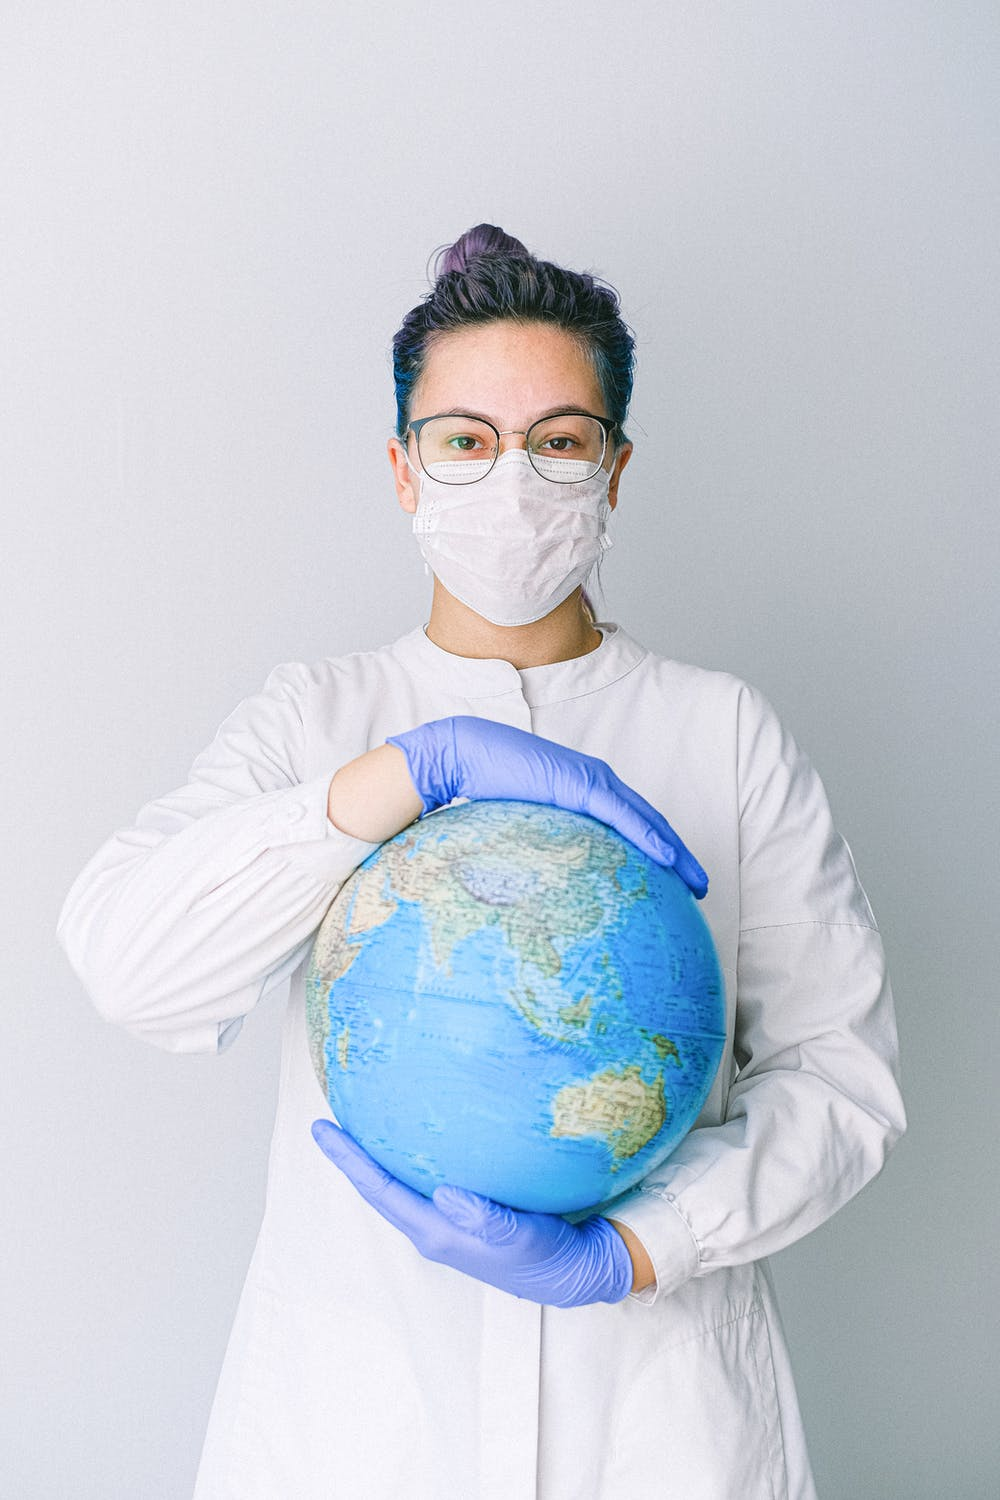 Beyond World Health Day: The Environment and Your Health